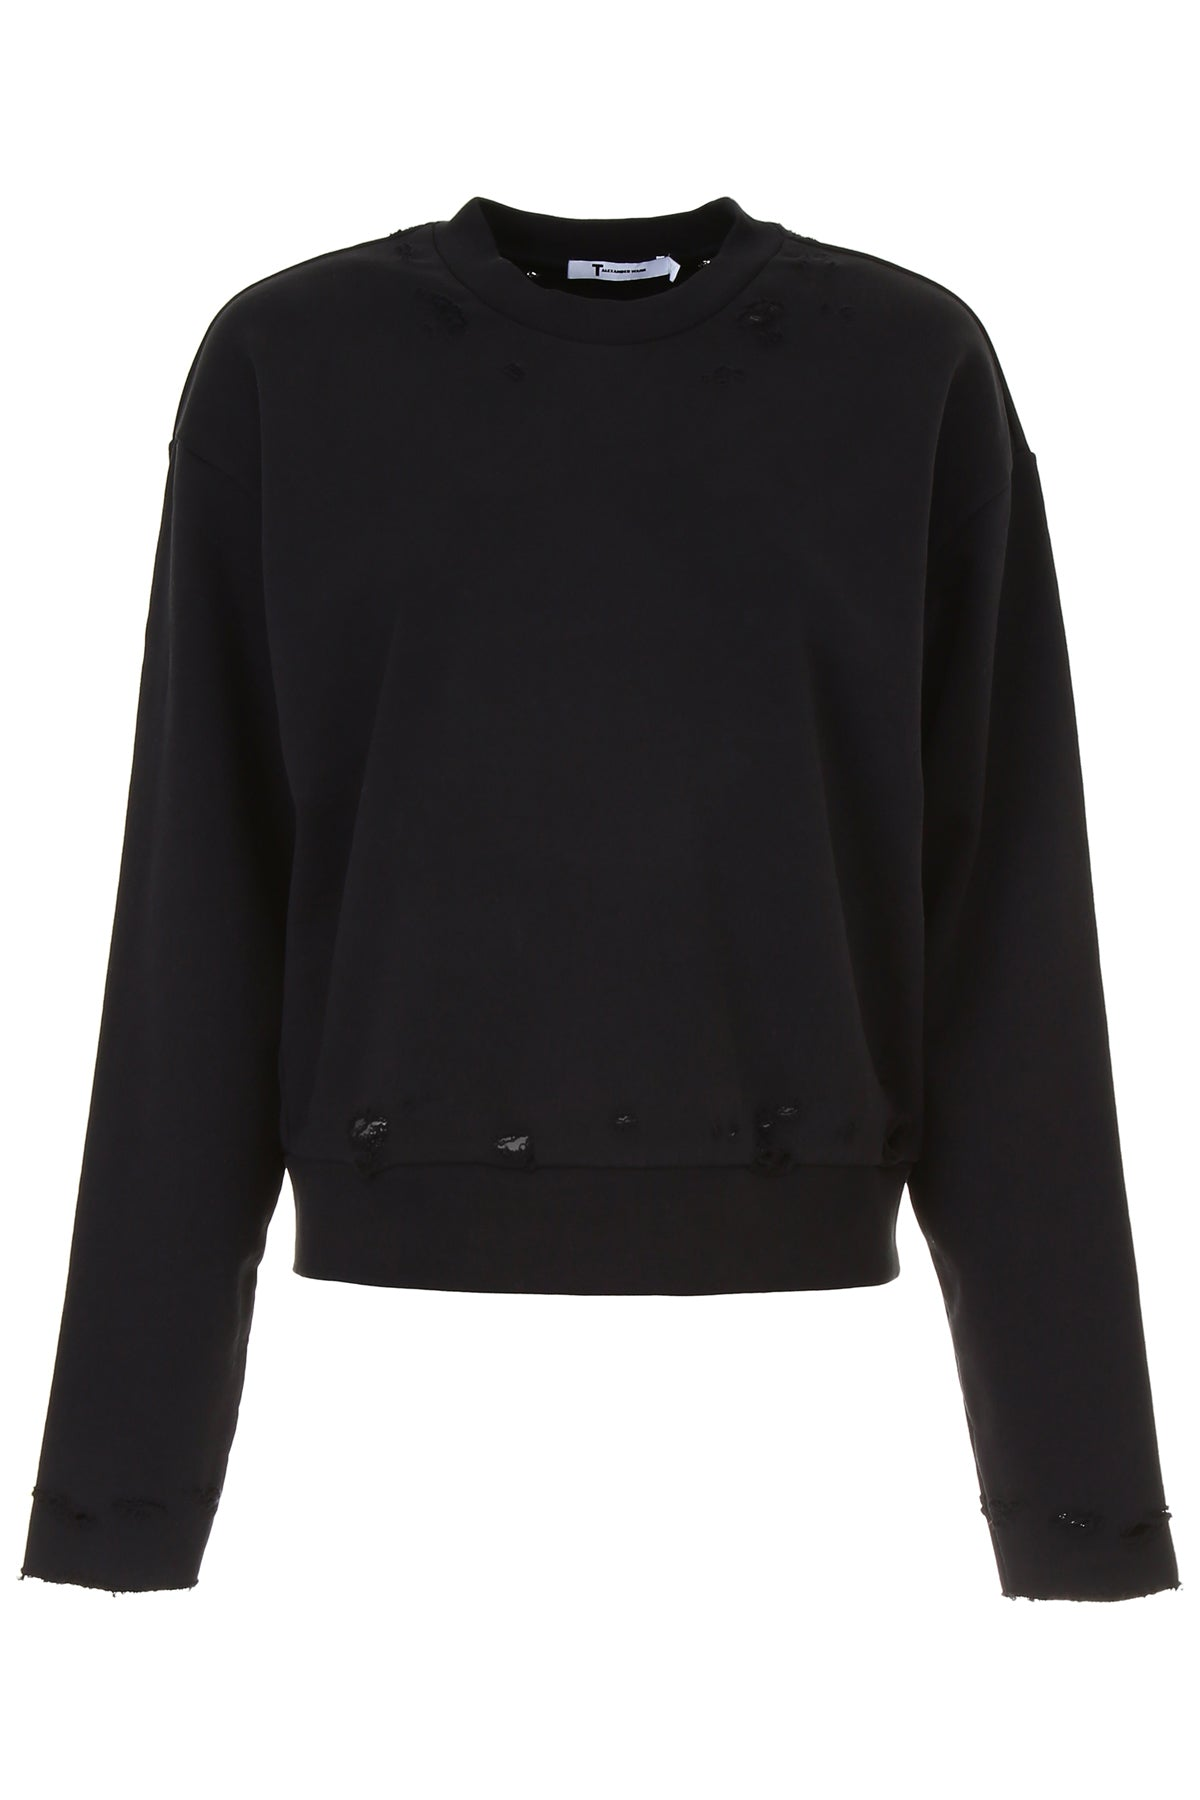 T By Alexander Wang Tops T BY ALEXANDER WANG DISTRESSED JUMPER